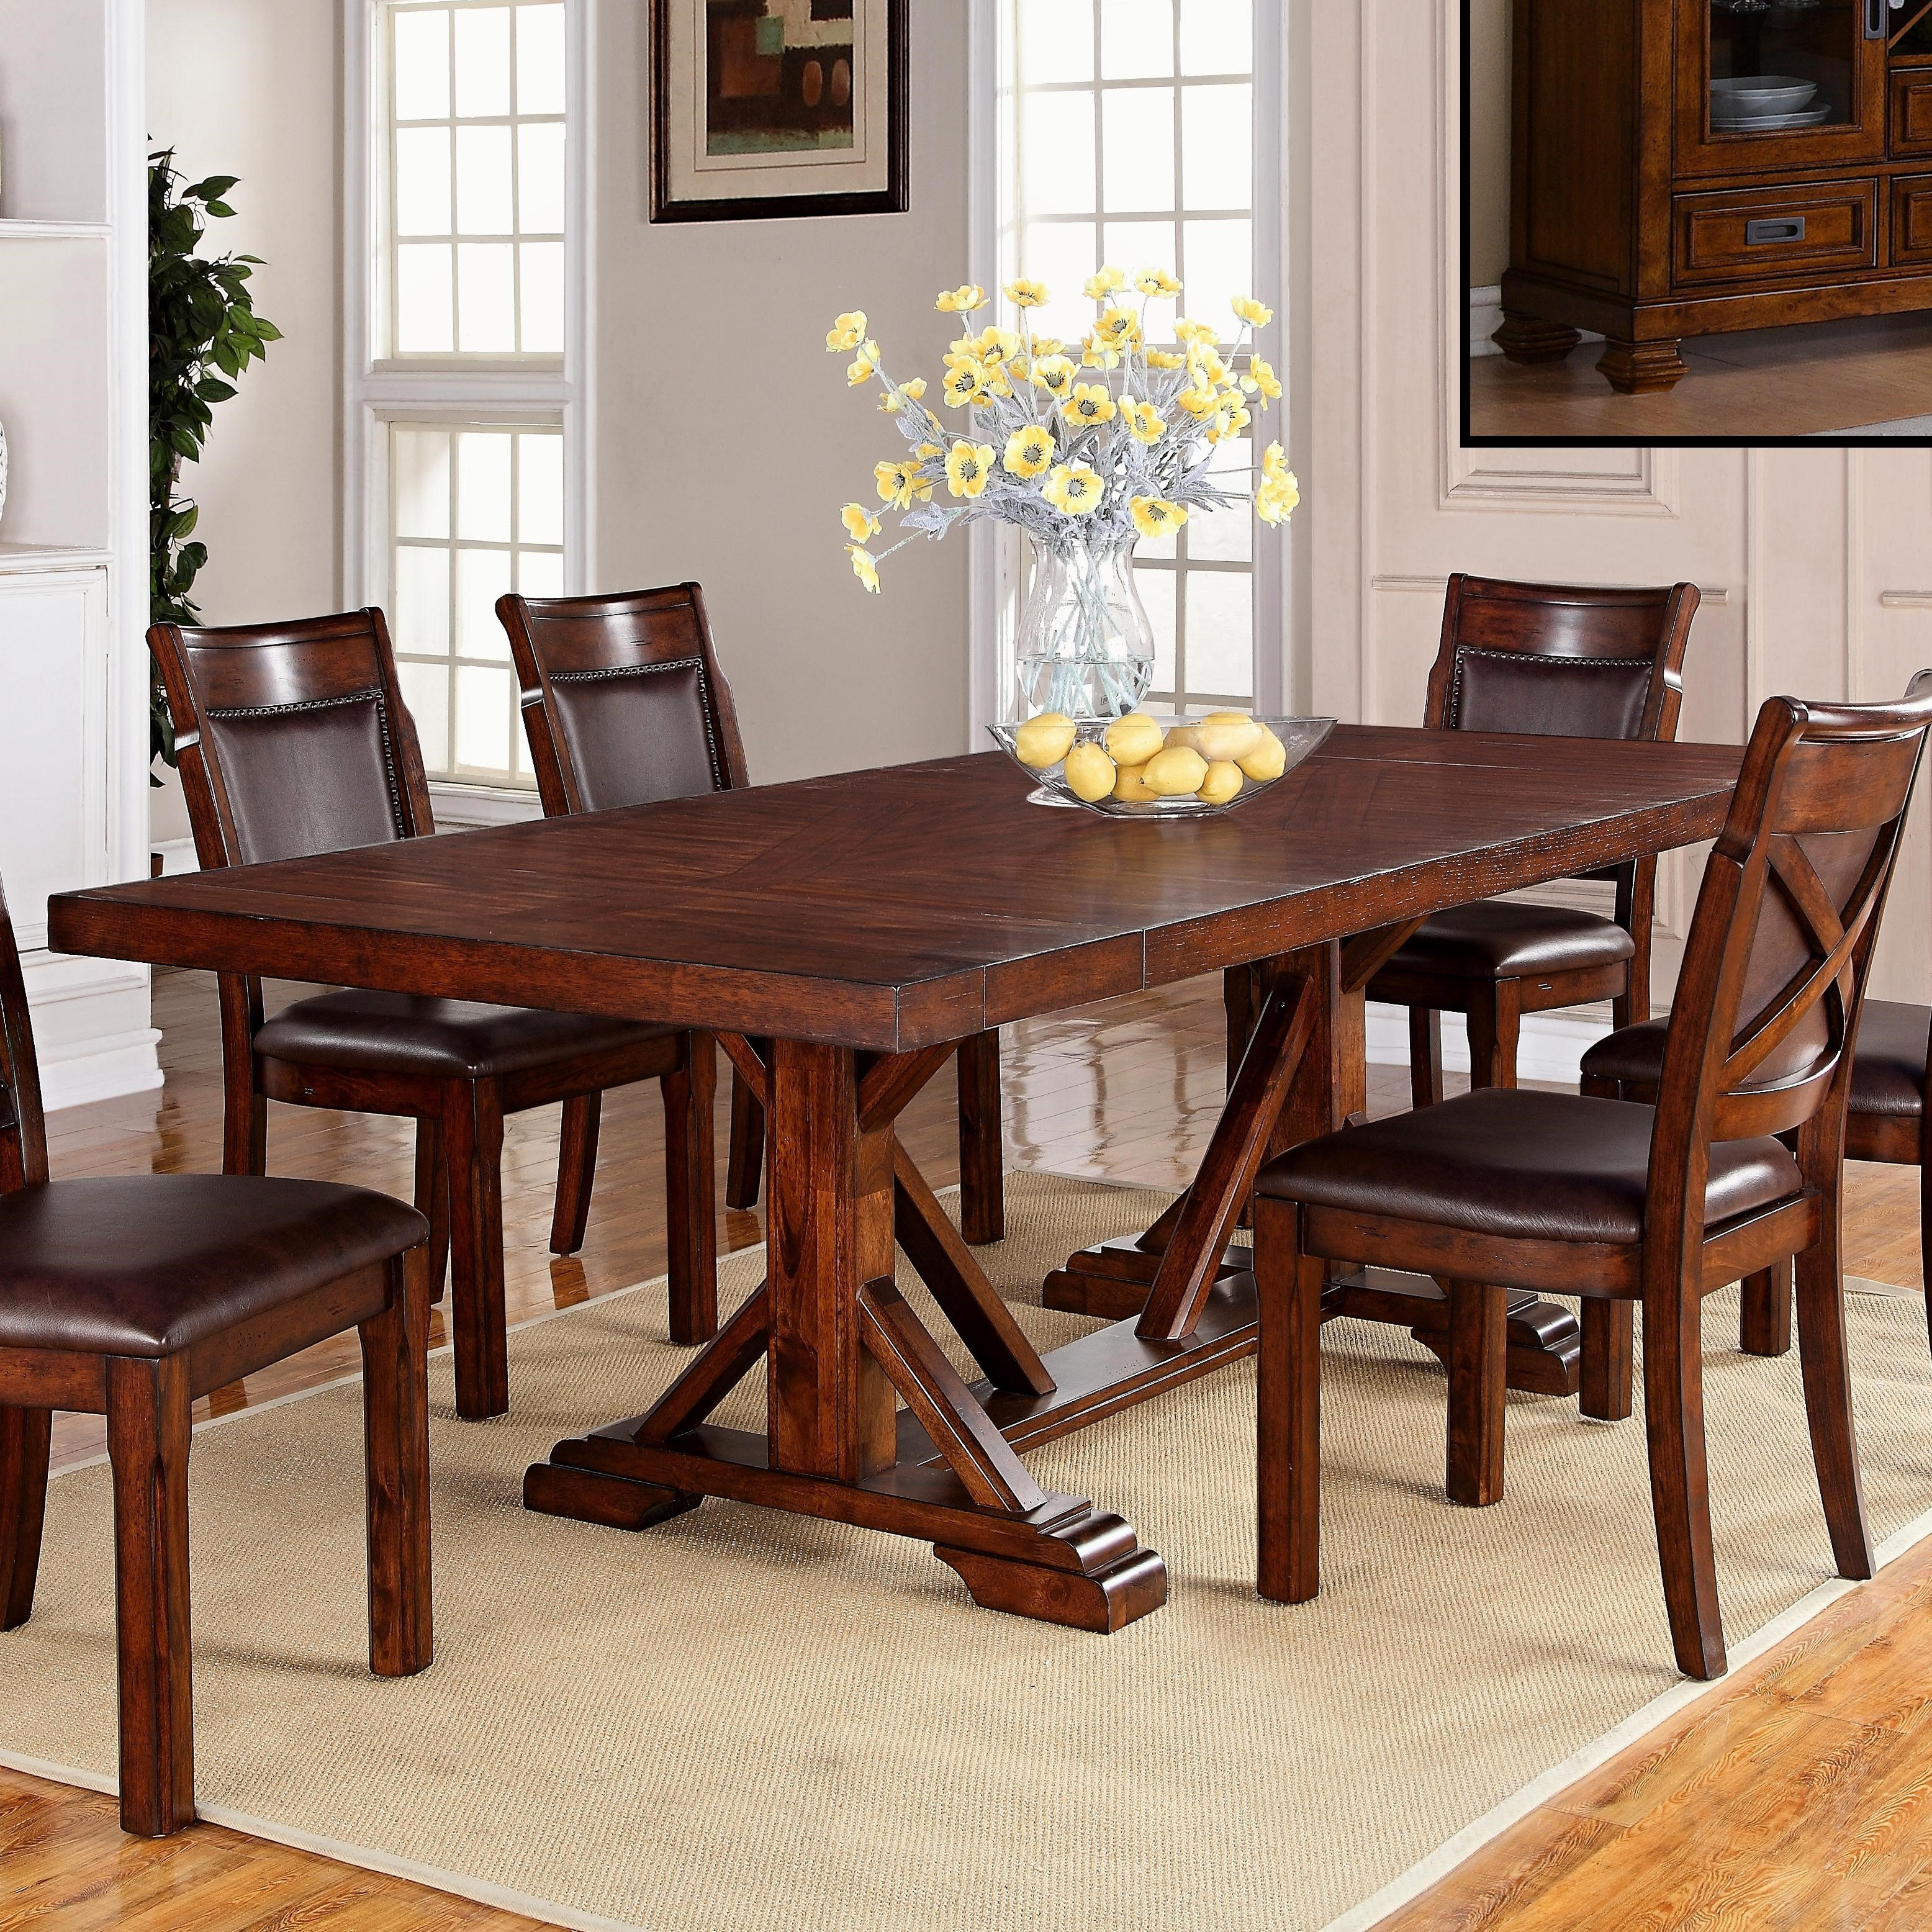 Warehouse M Adirondack Trestle Dining Table with Two  : products2Fhollandhouse2Fcolor2Fadirondack2012871287 44102 b0jpgscalebothampwidth500ampheight500ampfsharpen25ampdown from www.pilgrimfurniturecity.com size 500 x 500 jpeg 78kB